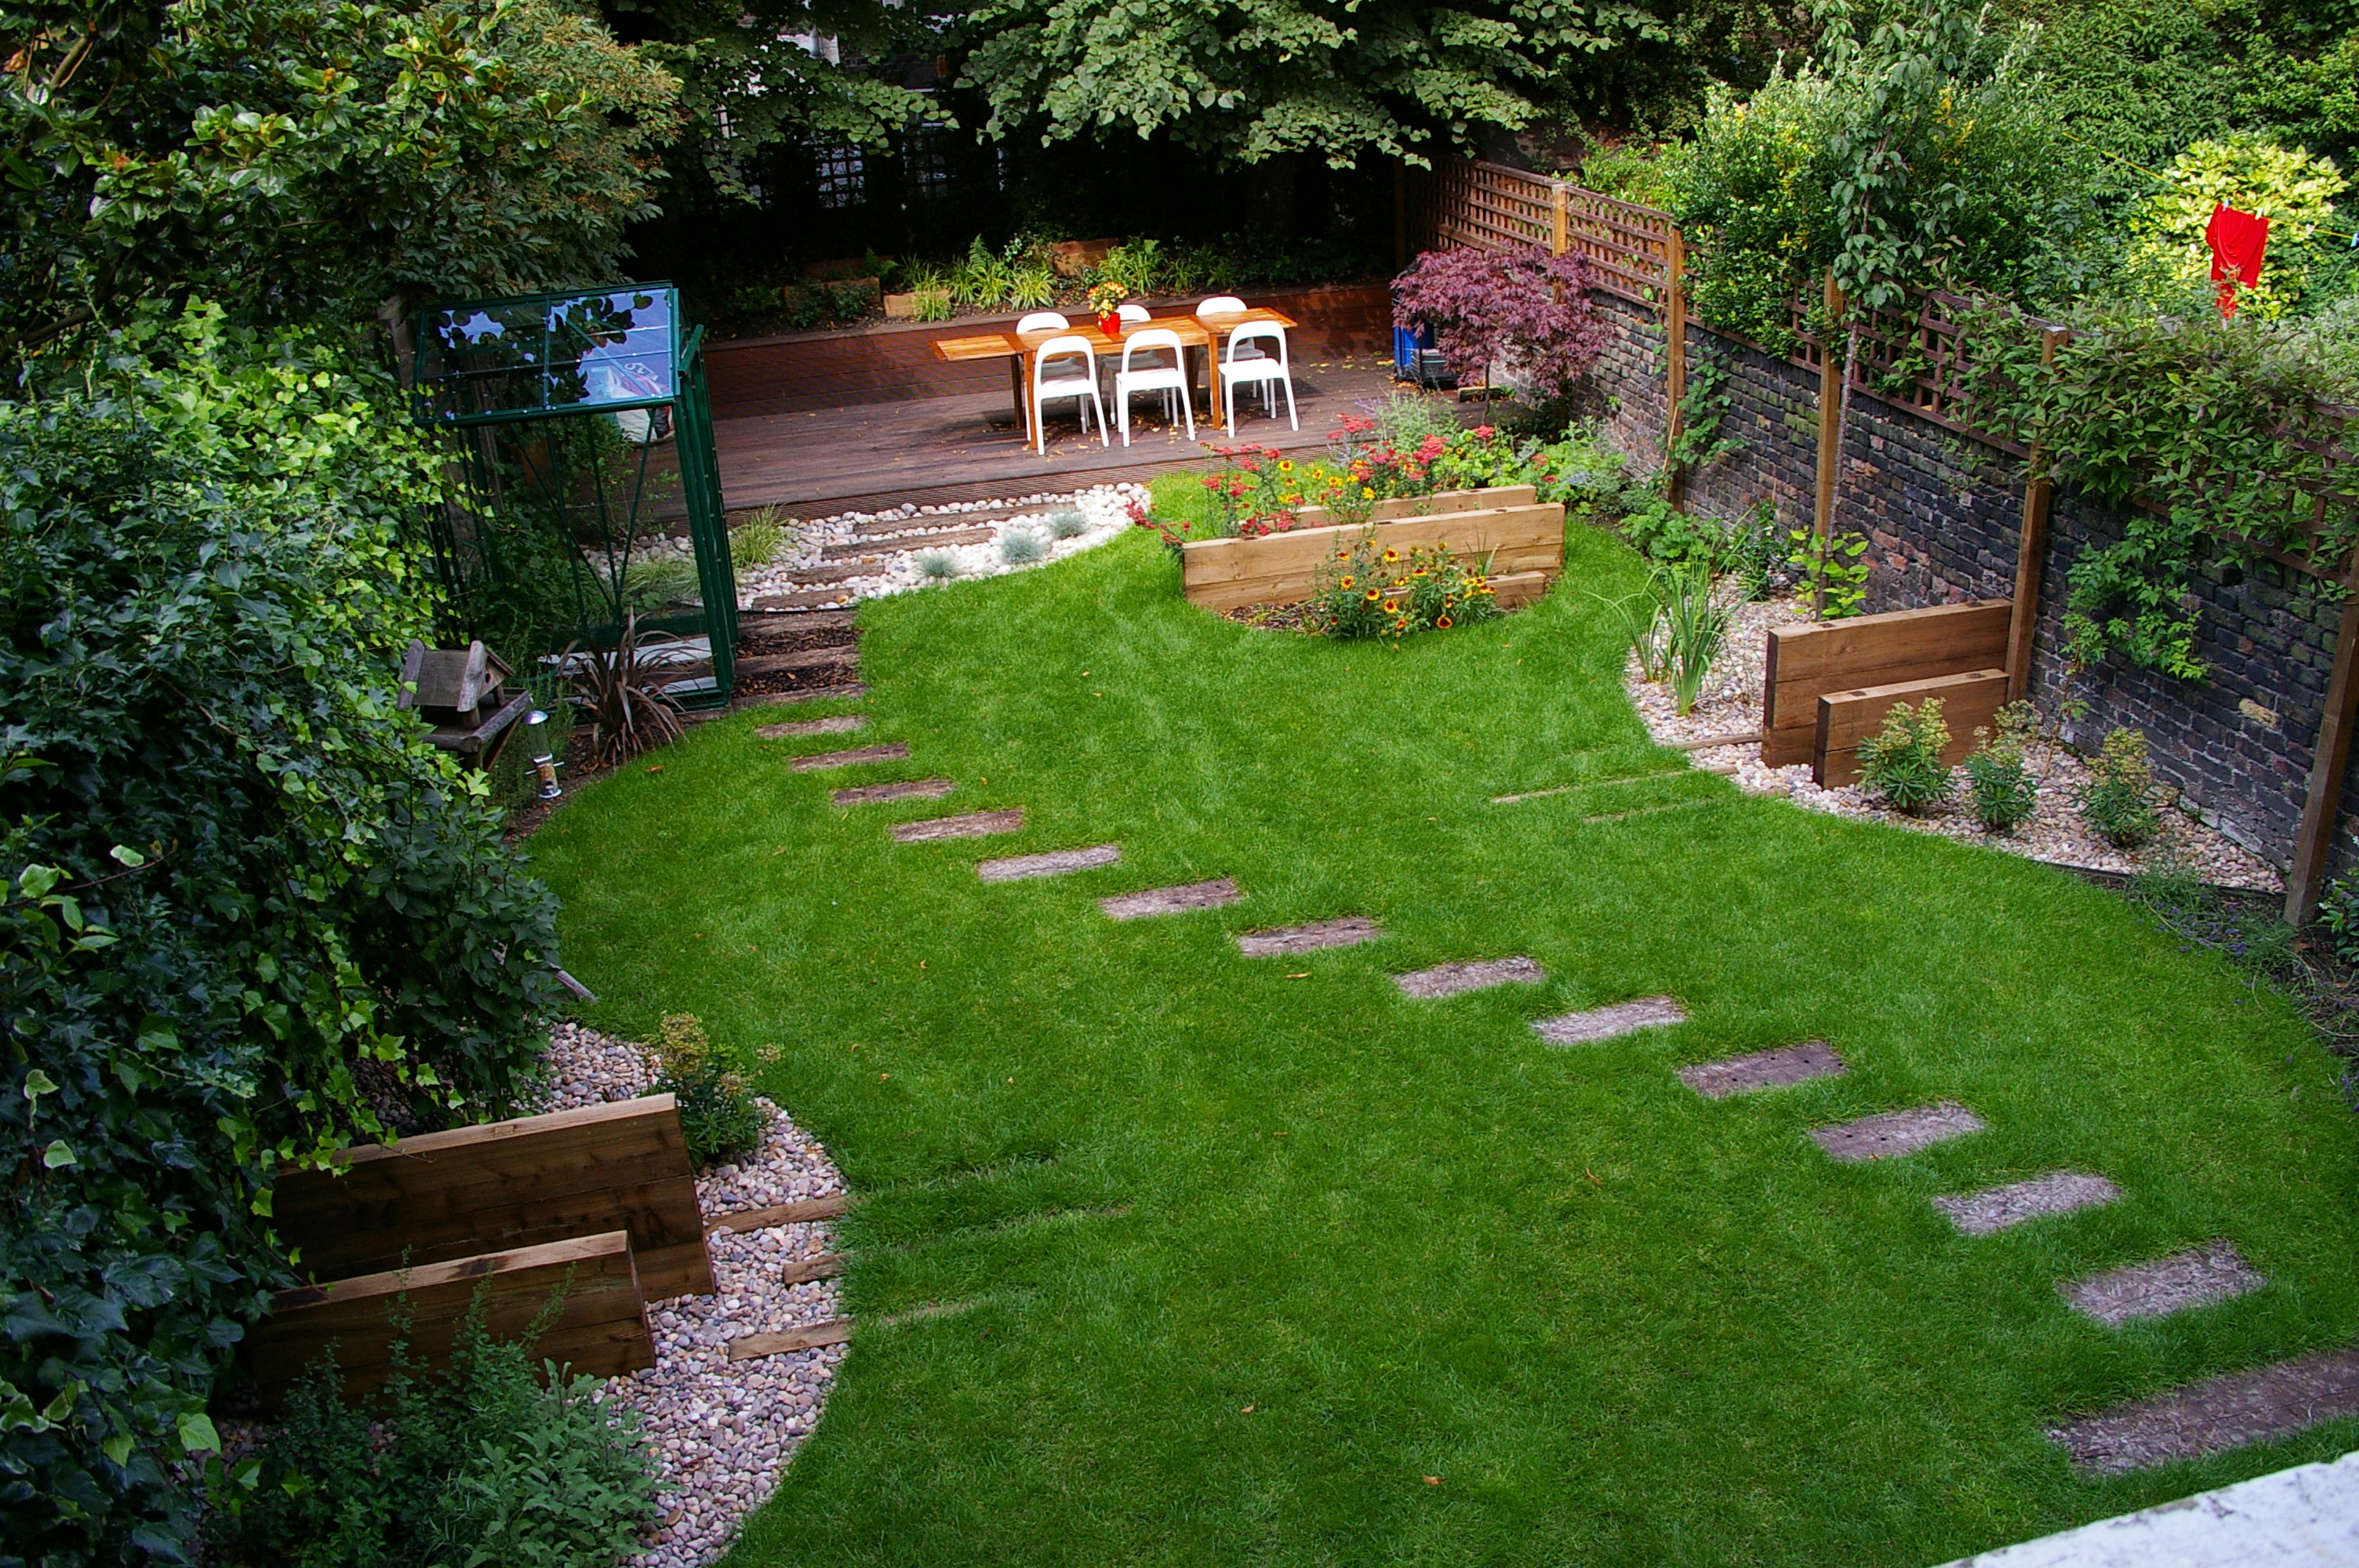 Popular Landscape Design Ideas For Backyards Harry Sandler Home Trend throughout Backyard Landscape Design Ideas